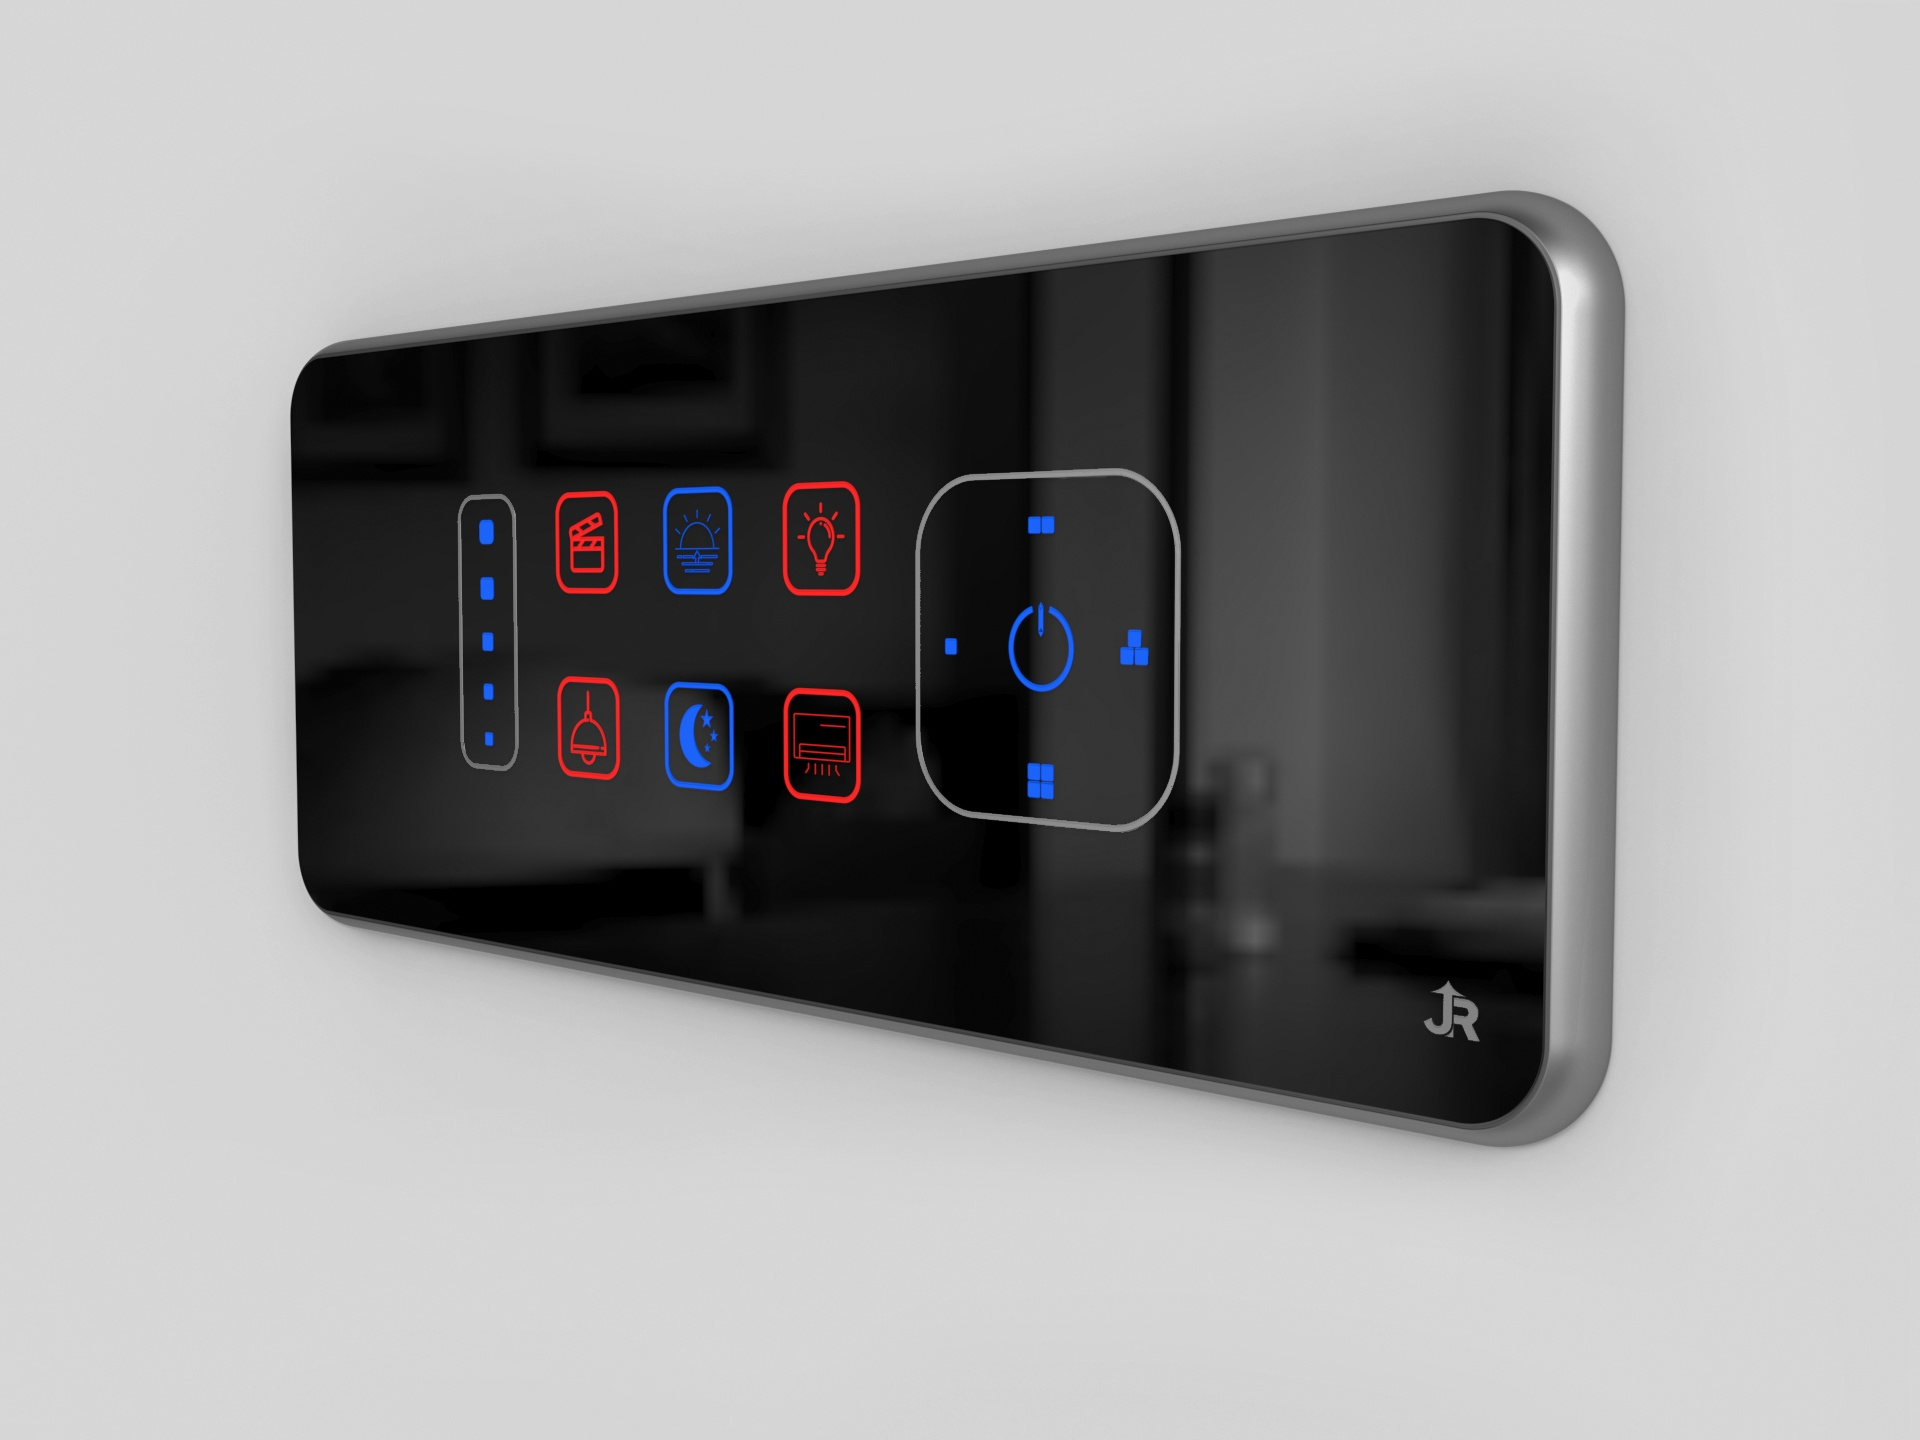 How JR Touch Panel gives challenge to any brand for their smart touch panel?